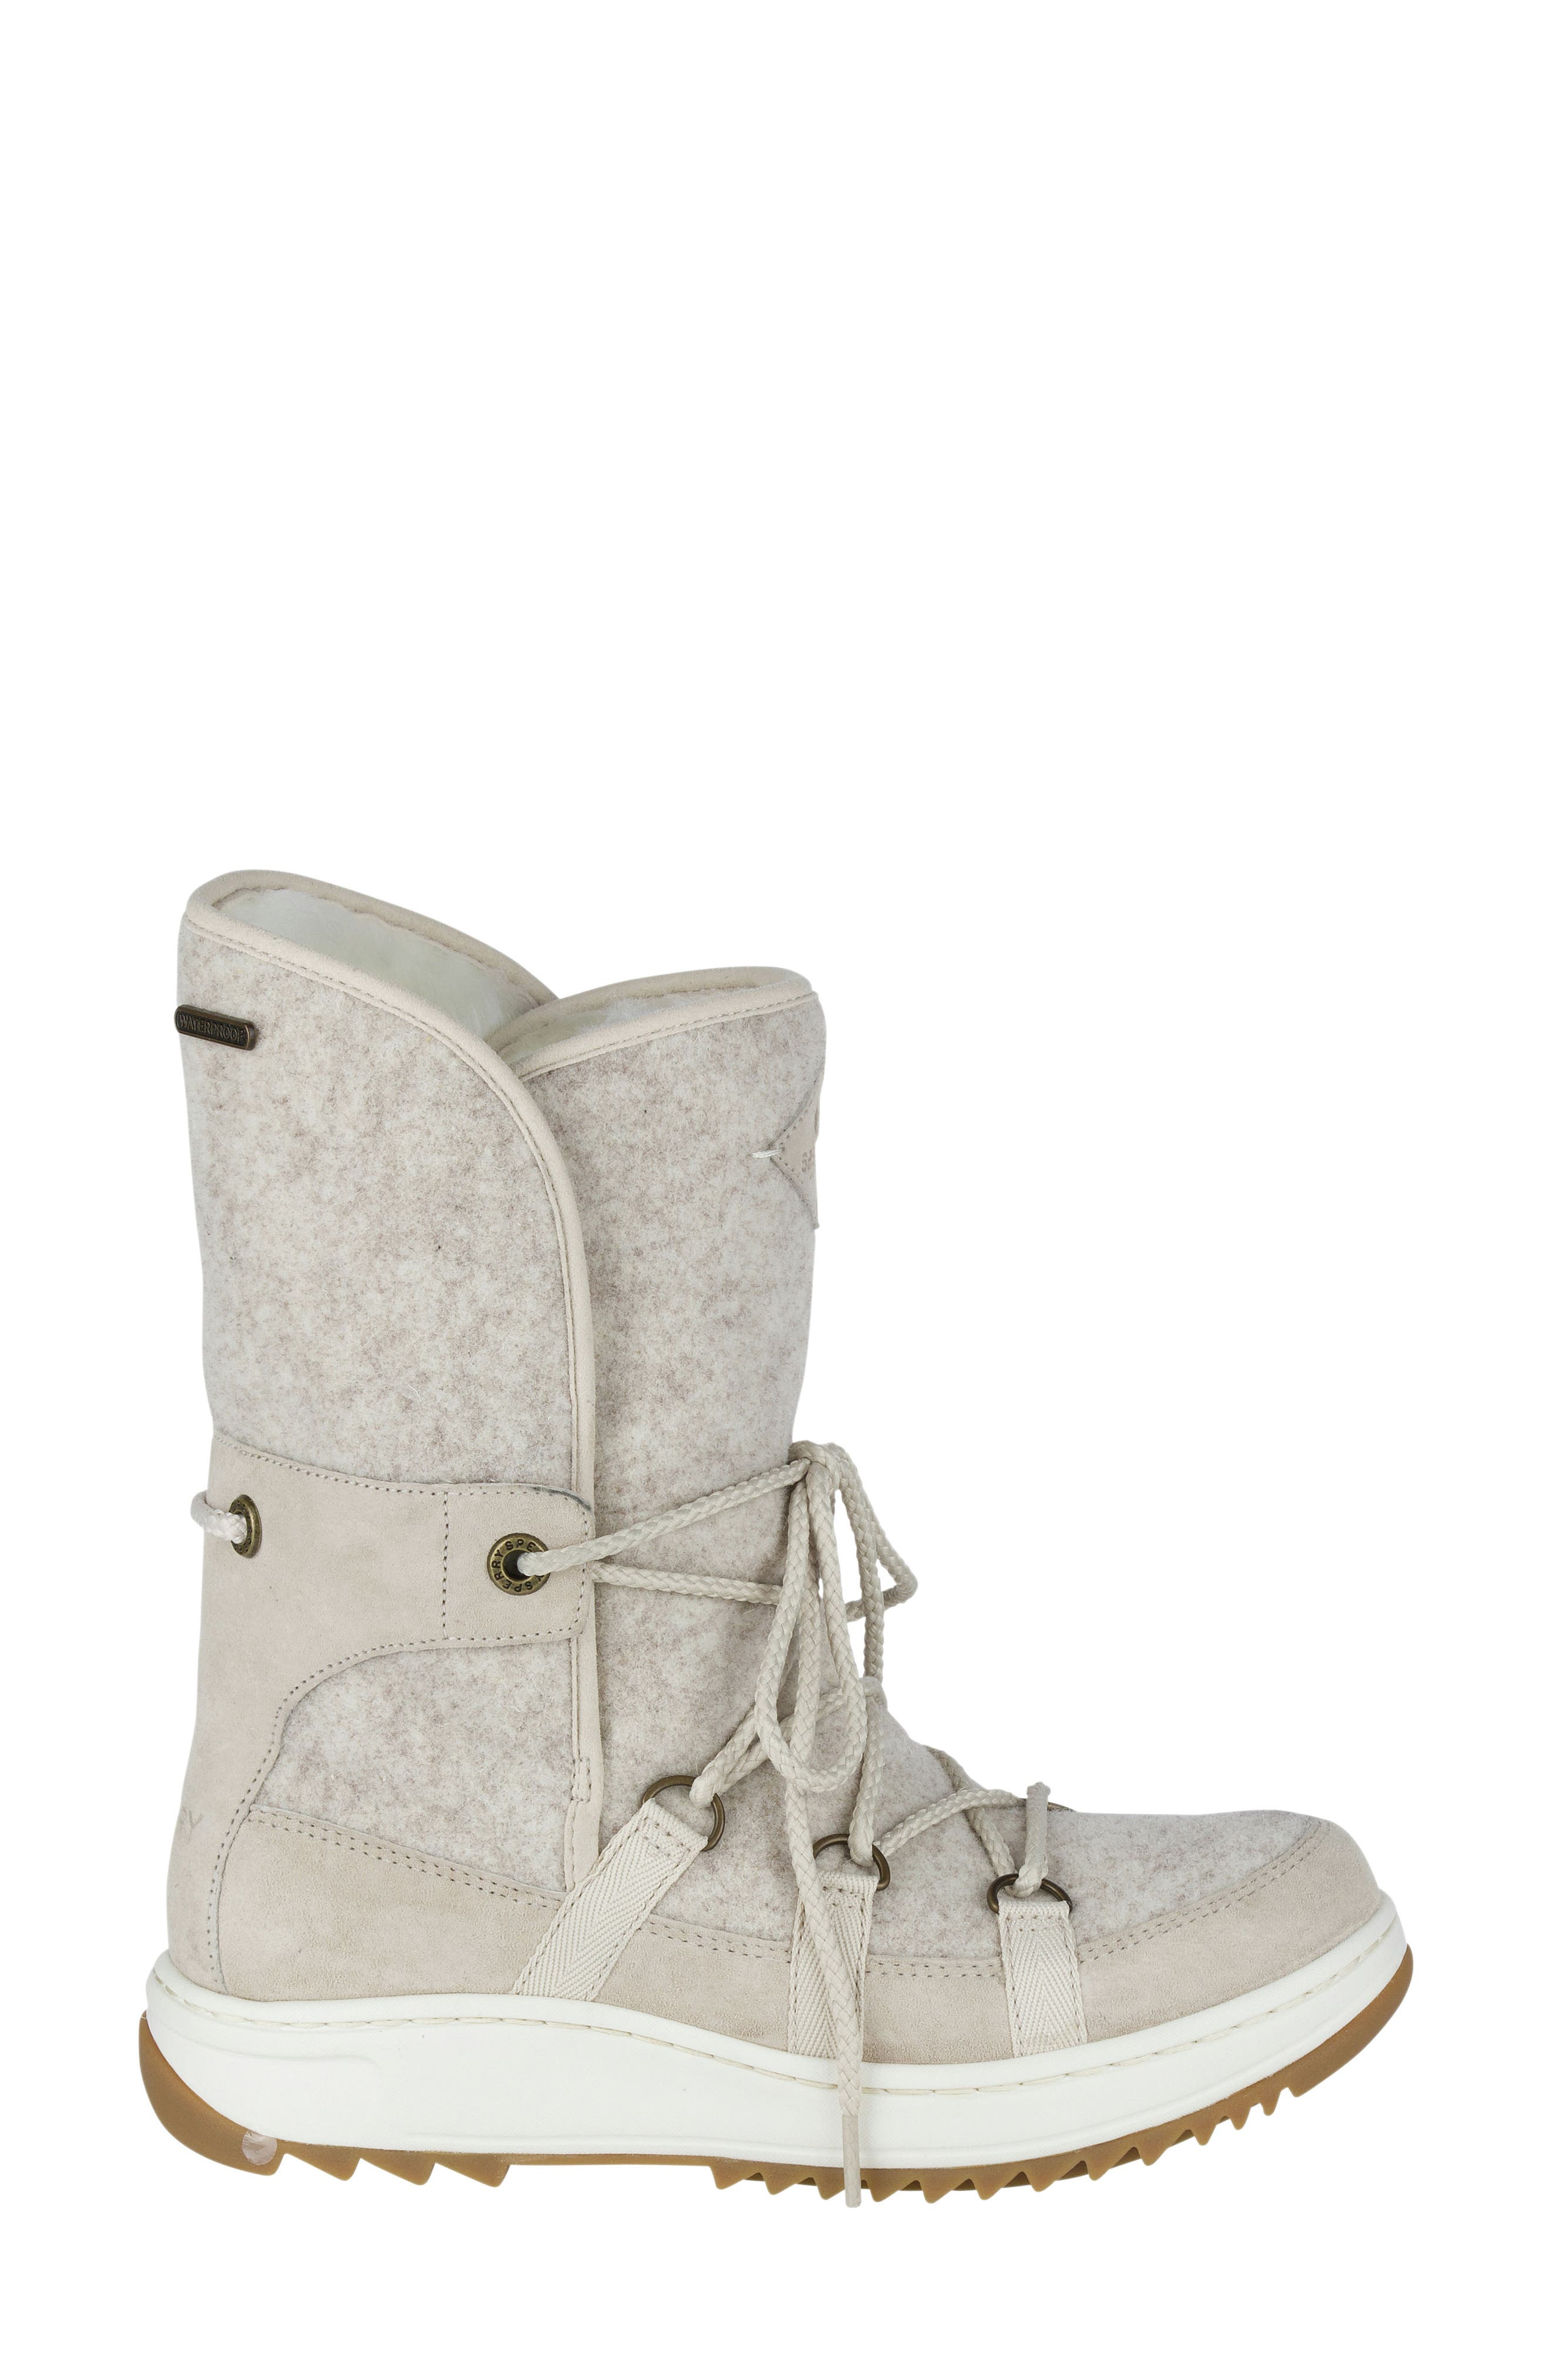 Powder Ice Cap Thinsulate Insulated Water Resistant Boot,                             Alternate thumbnail 3, color,                             Ivory Suede